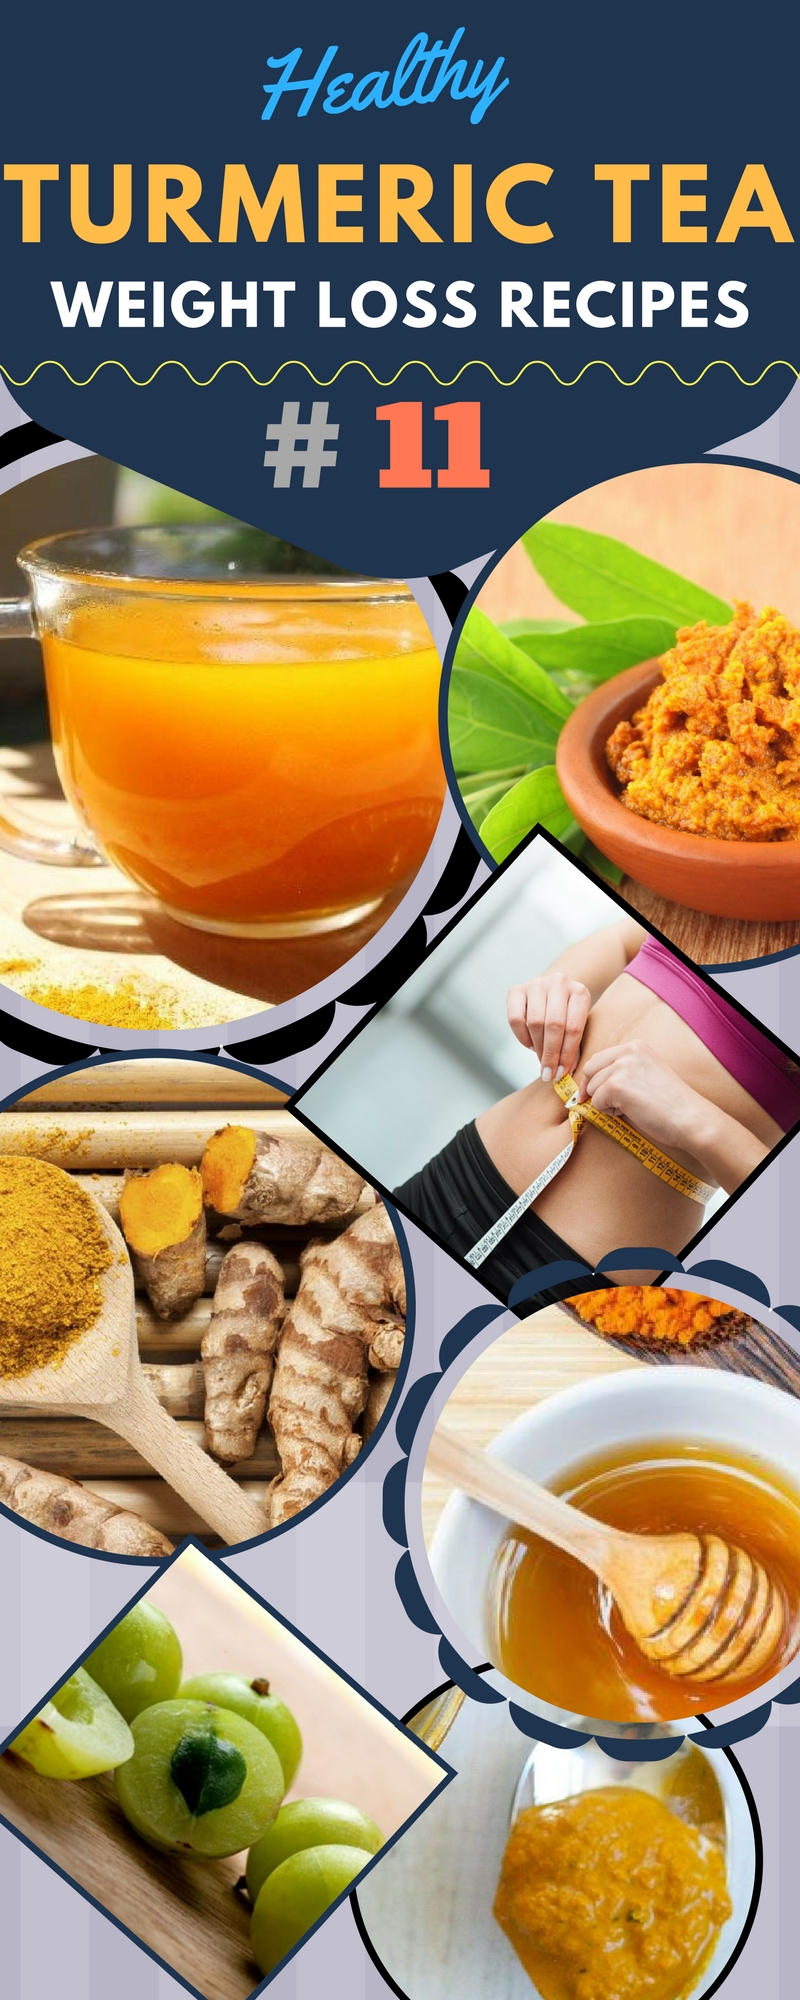 #11 Turmeric Recipes for Weight Loss: Easy Home Remedies ...